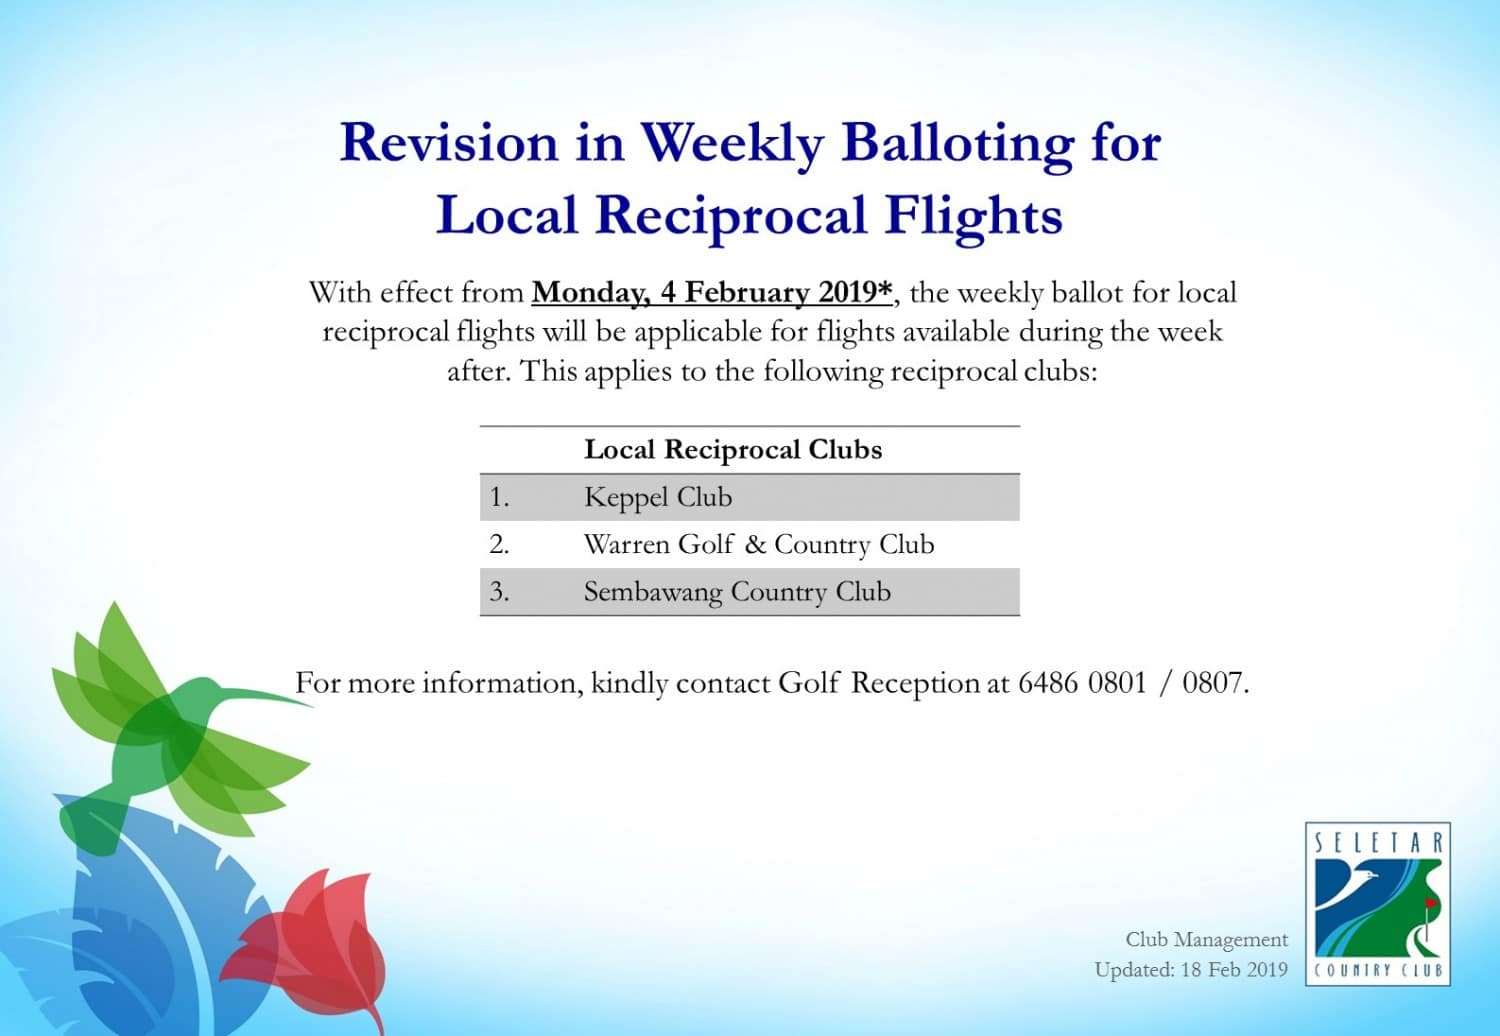 Revision in Weekly Balloting for Local Reciprocal Flights_R2